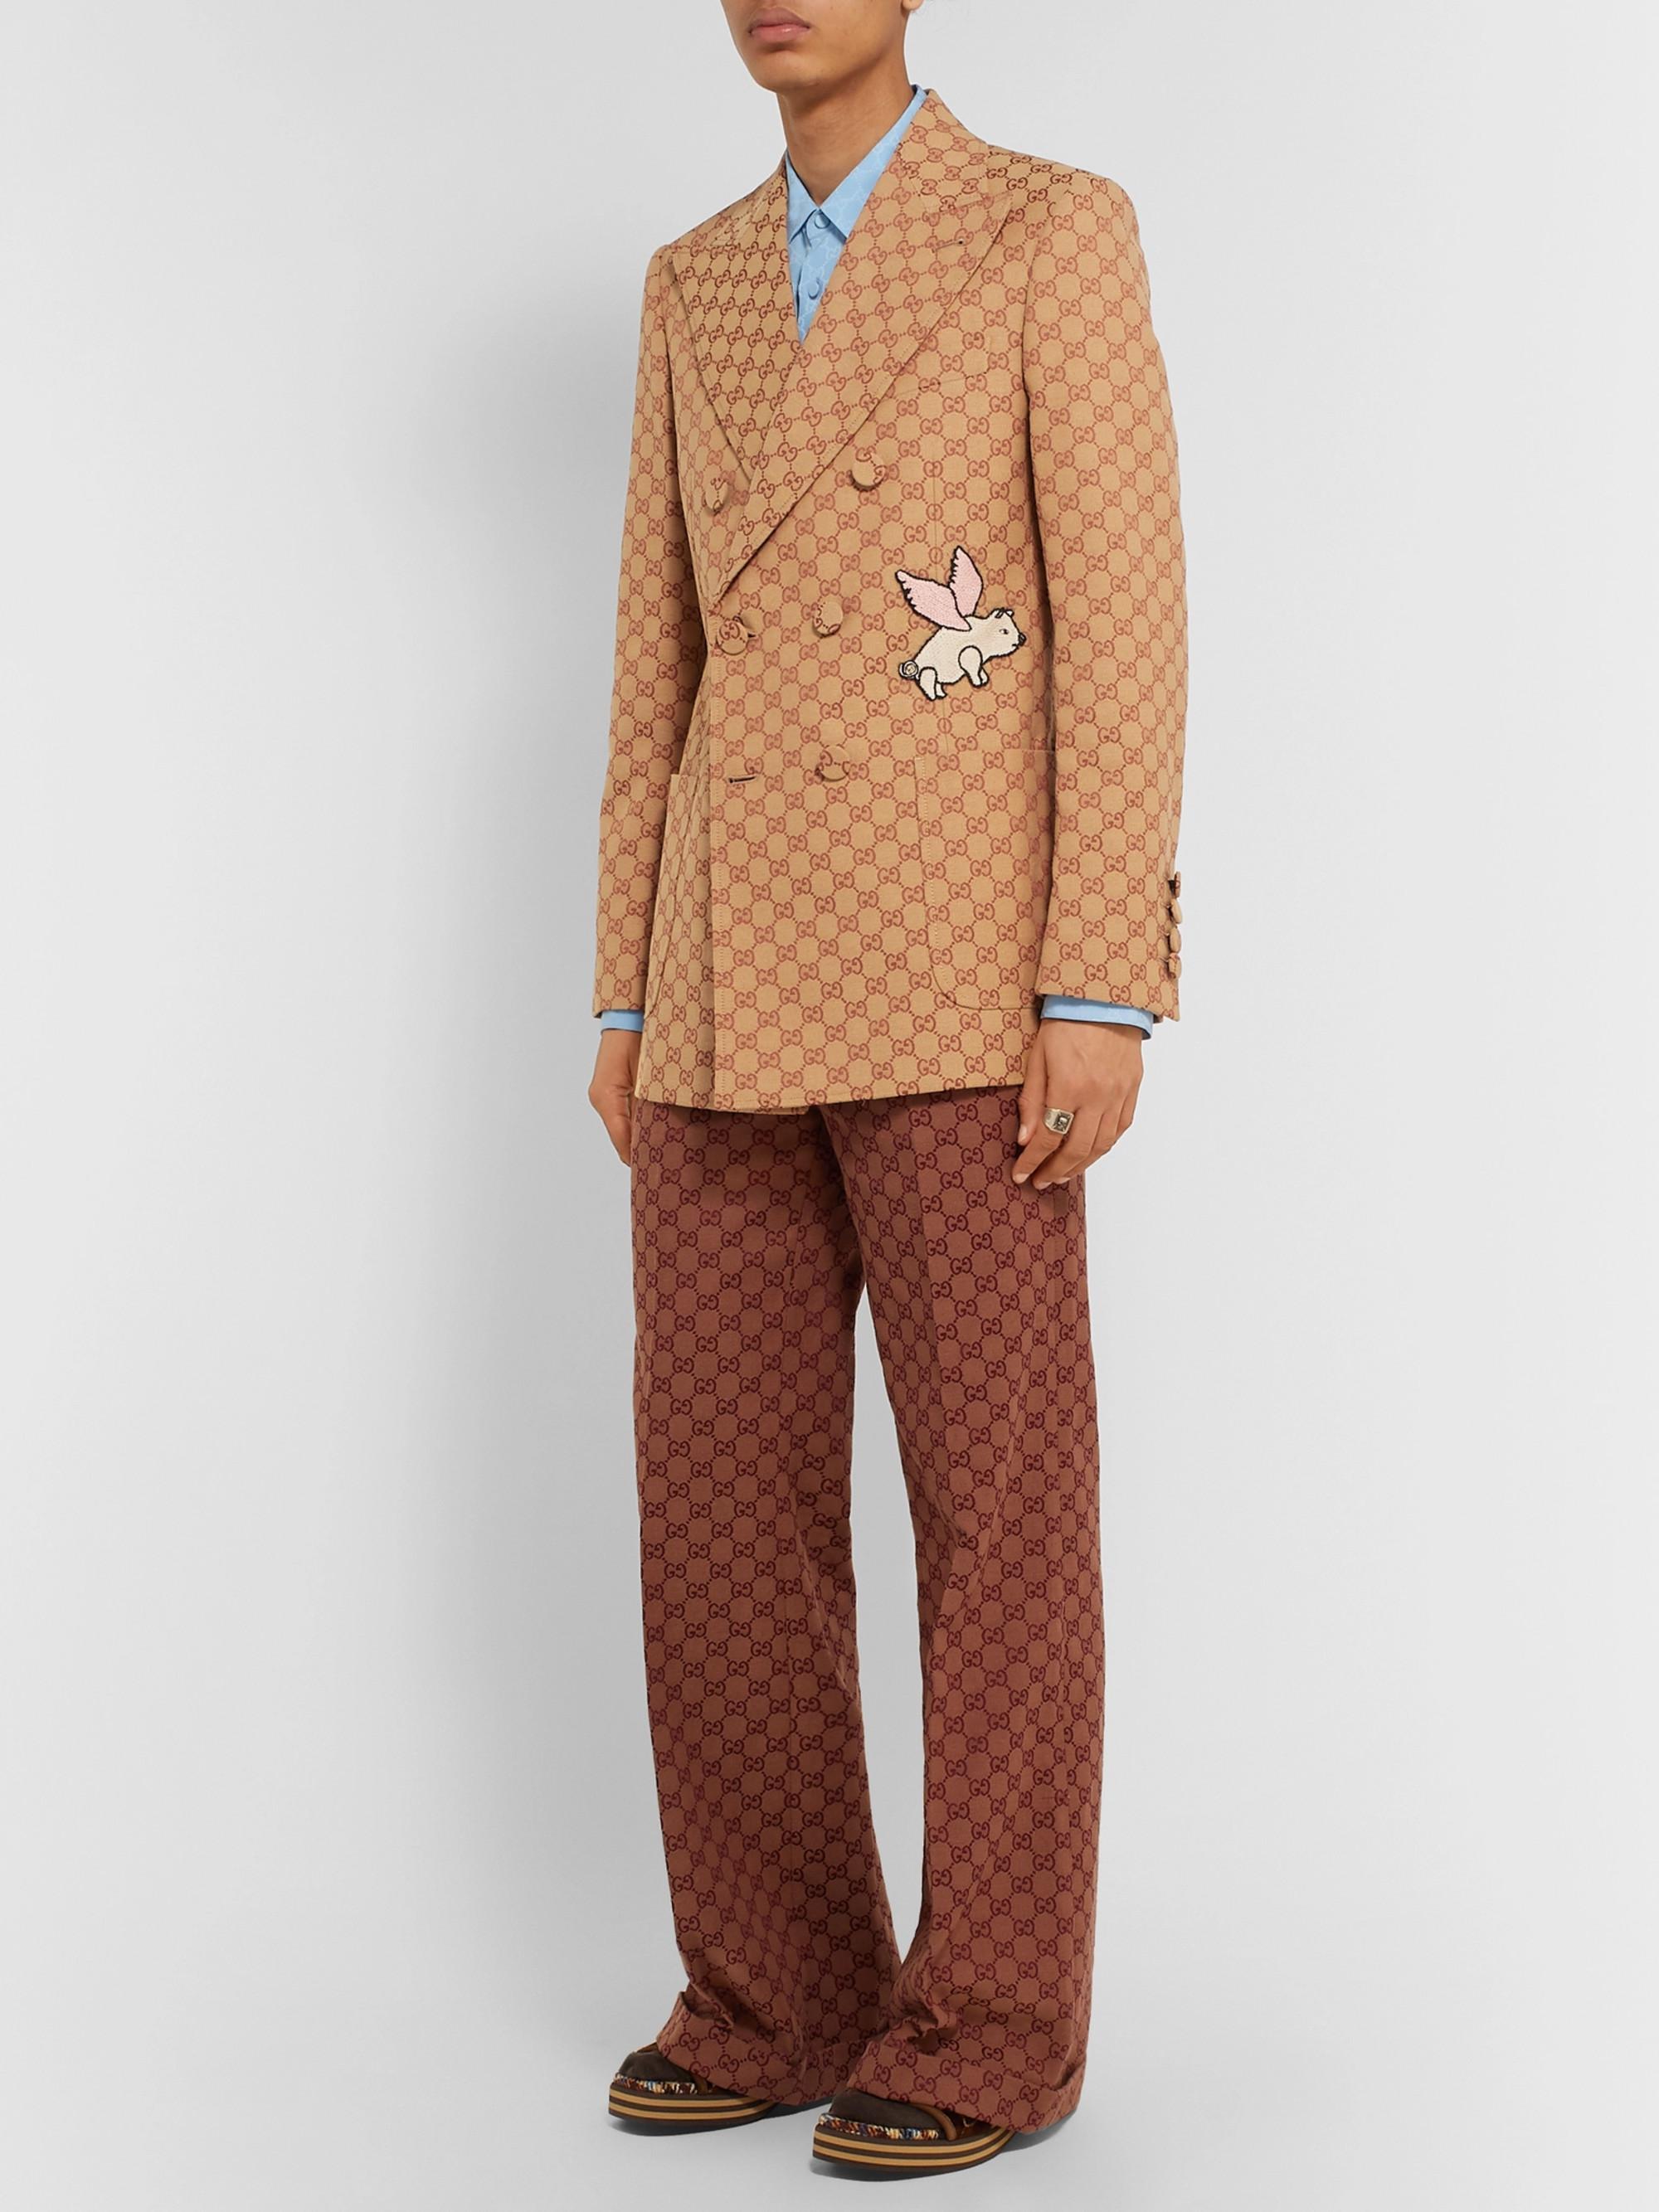 Gucci Beige Double-Breasted Appliquéd Logo-Jacquard Cotton-Blend Suit Jacket